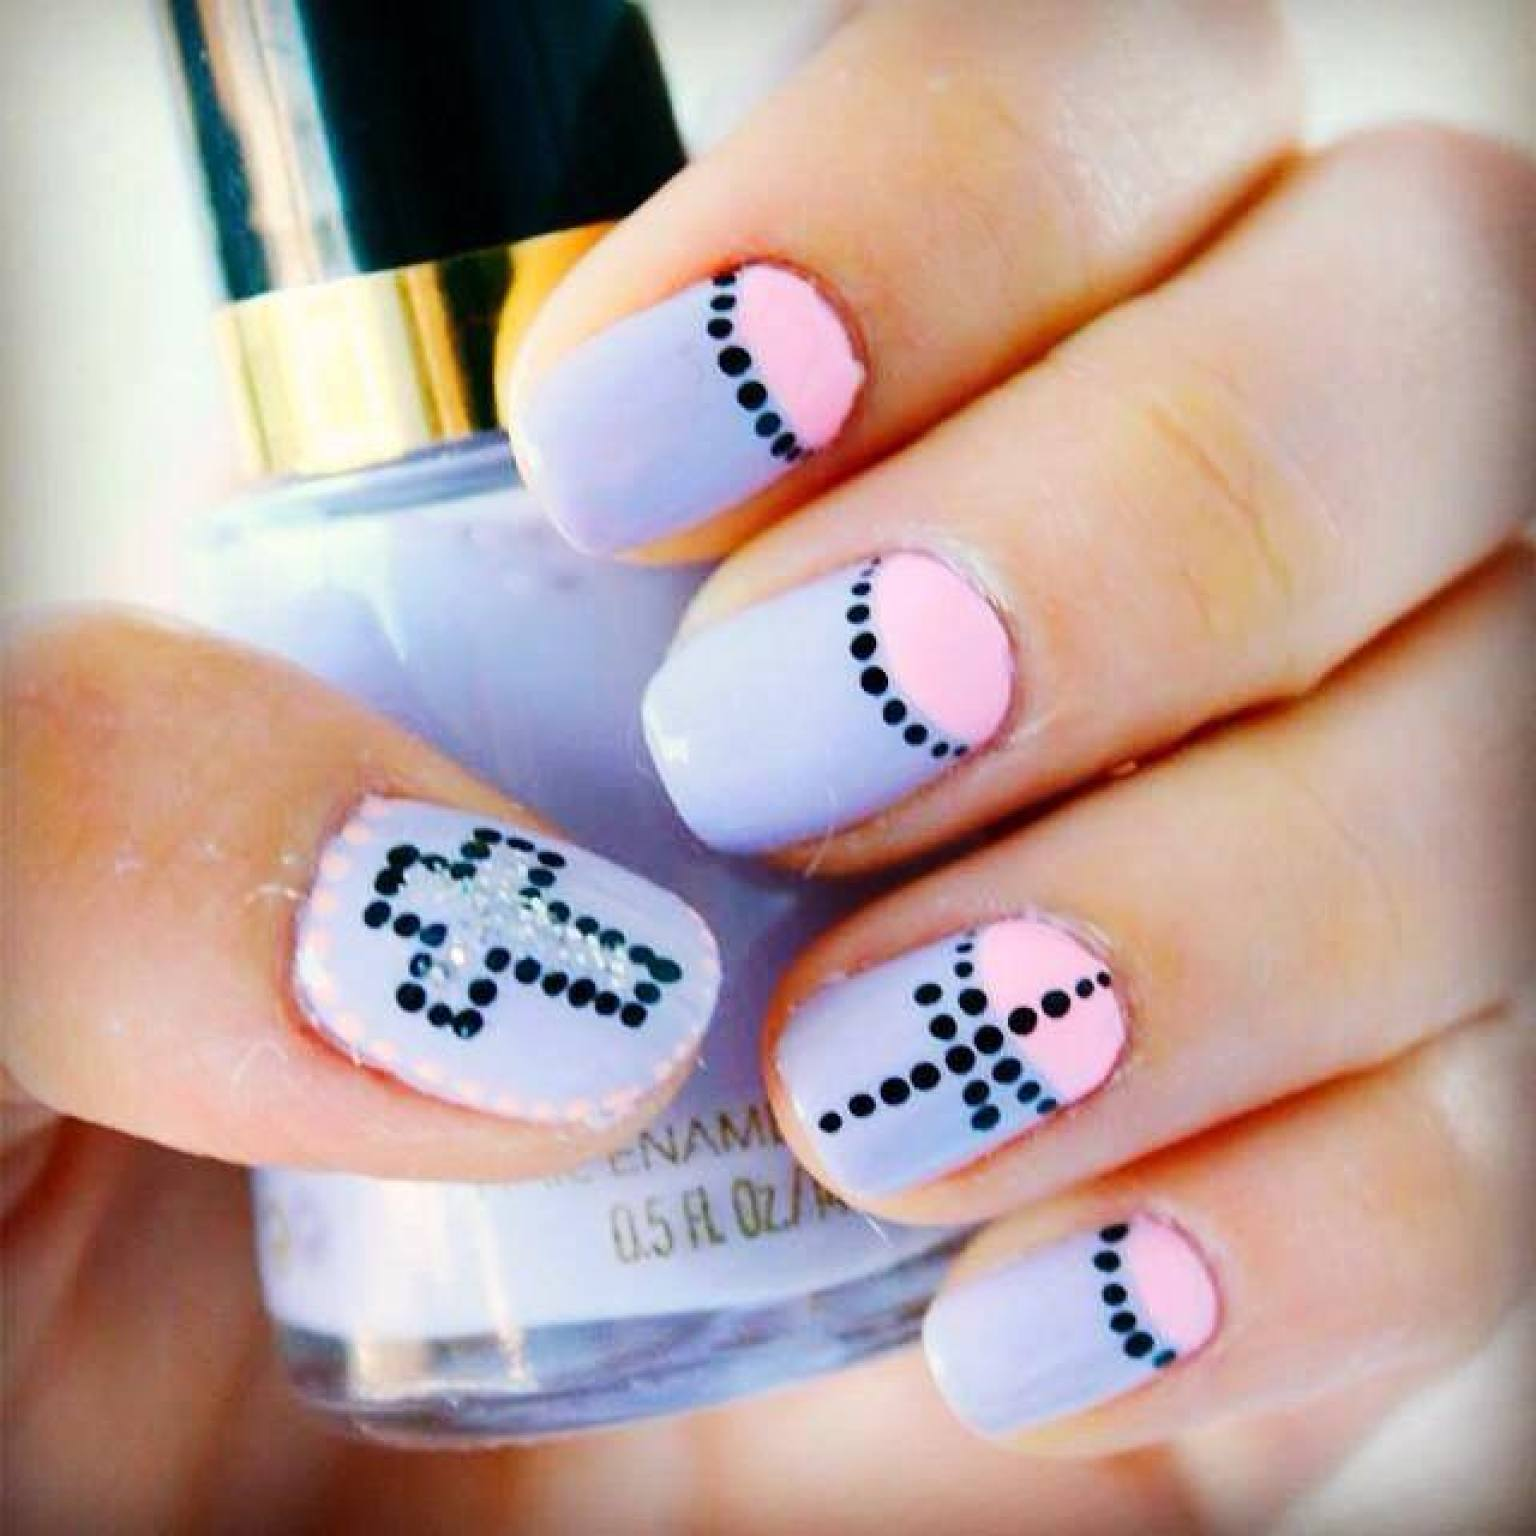 Best Nail Salons In La By Hood Eastside West Hollywood Beverly Hills Westside Photos Huffpost